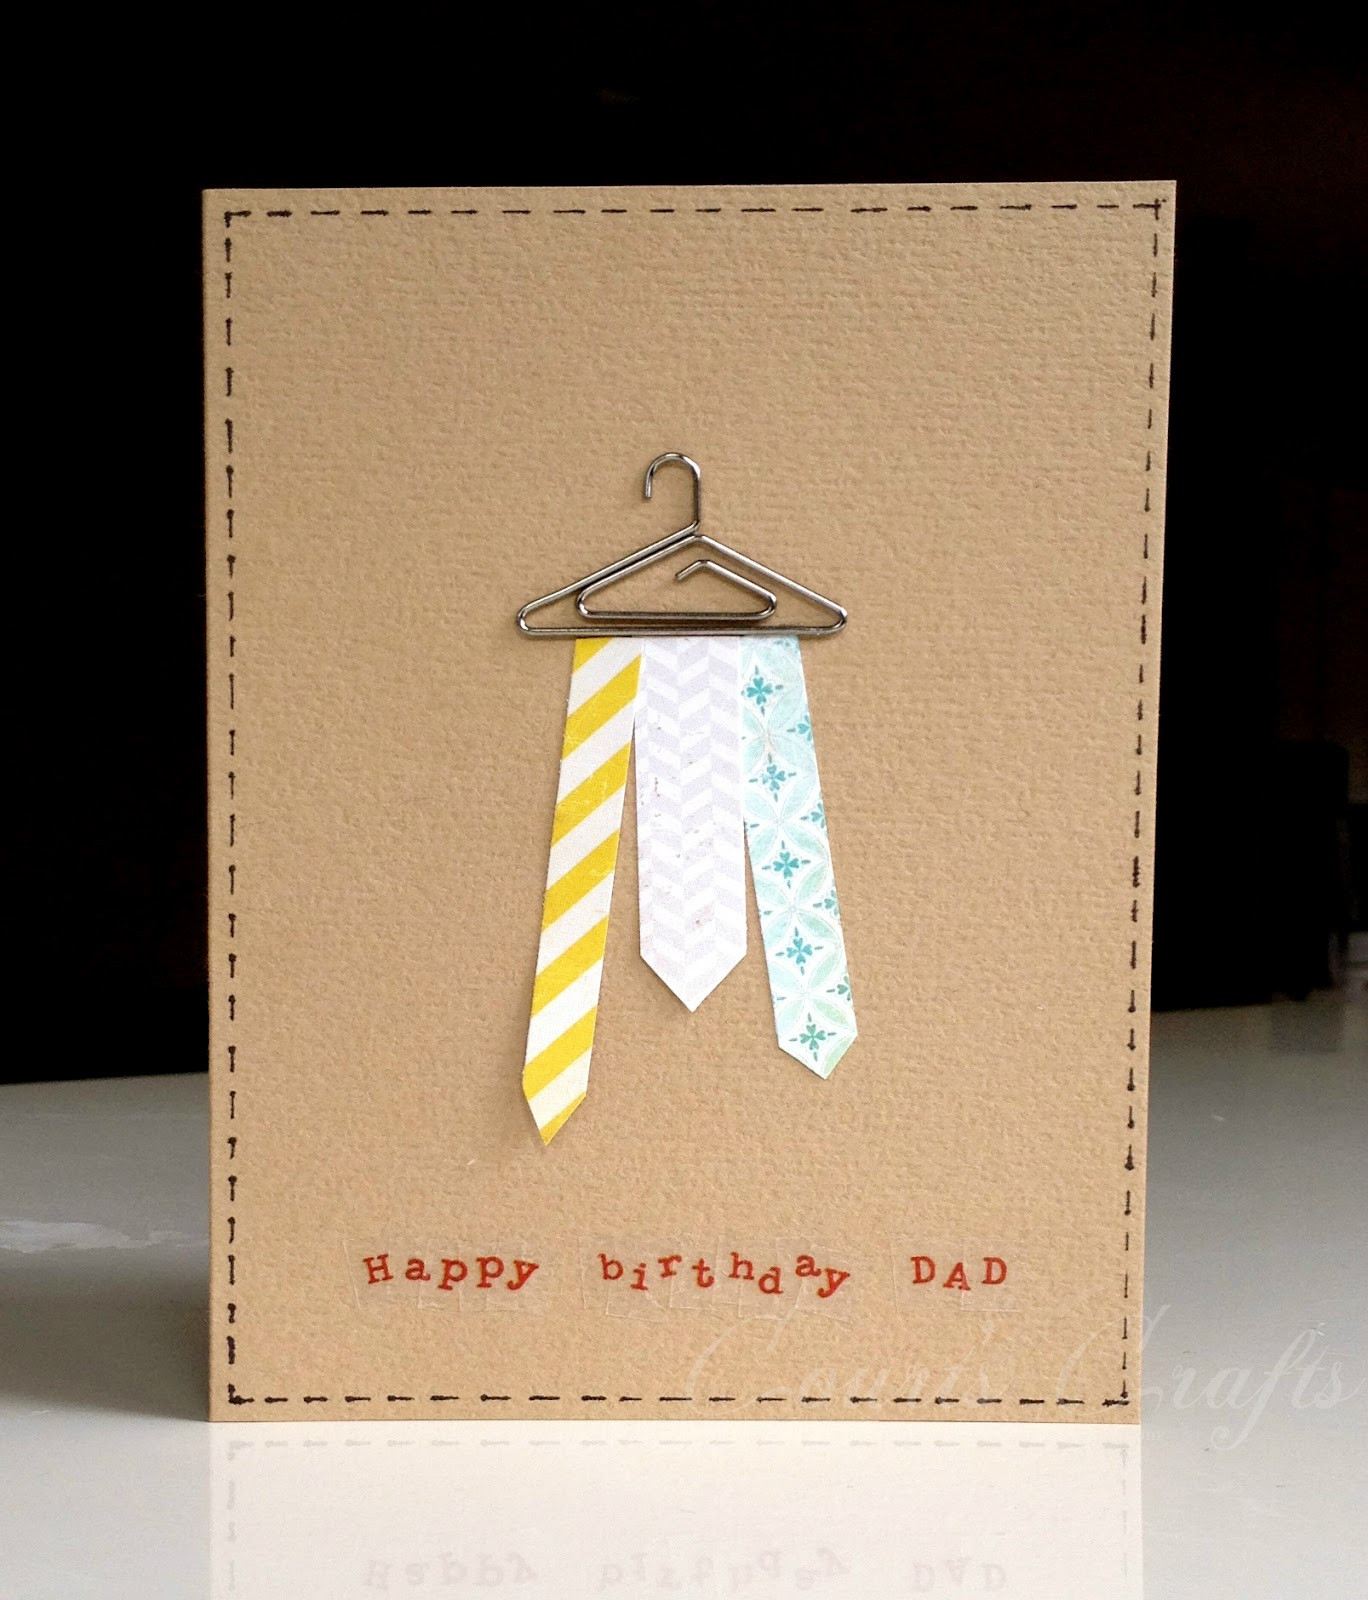 Best ideas about Birthday Card Dad . Save or Pin Pumpkin Spice Happy birthday dad Now.